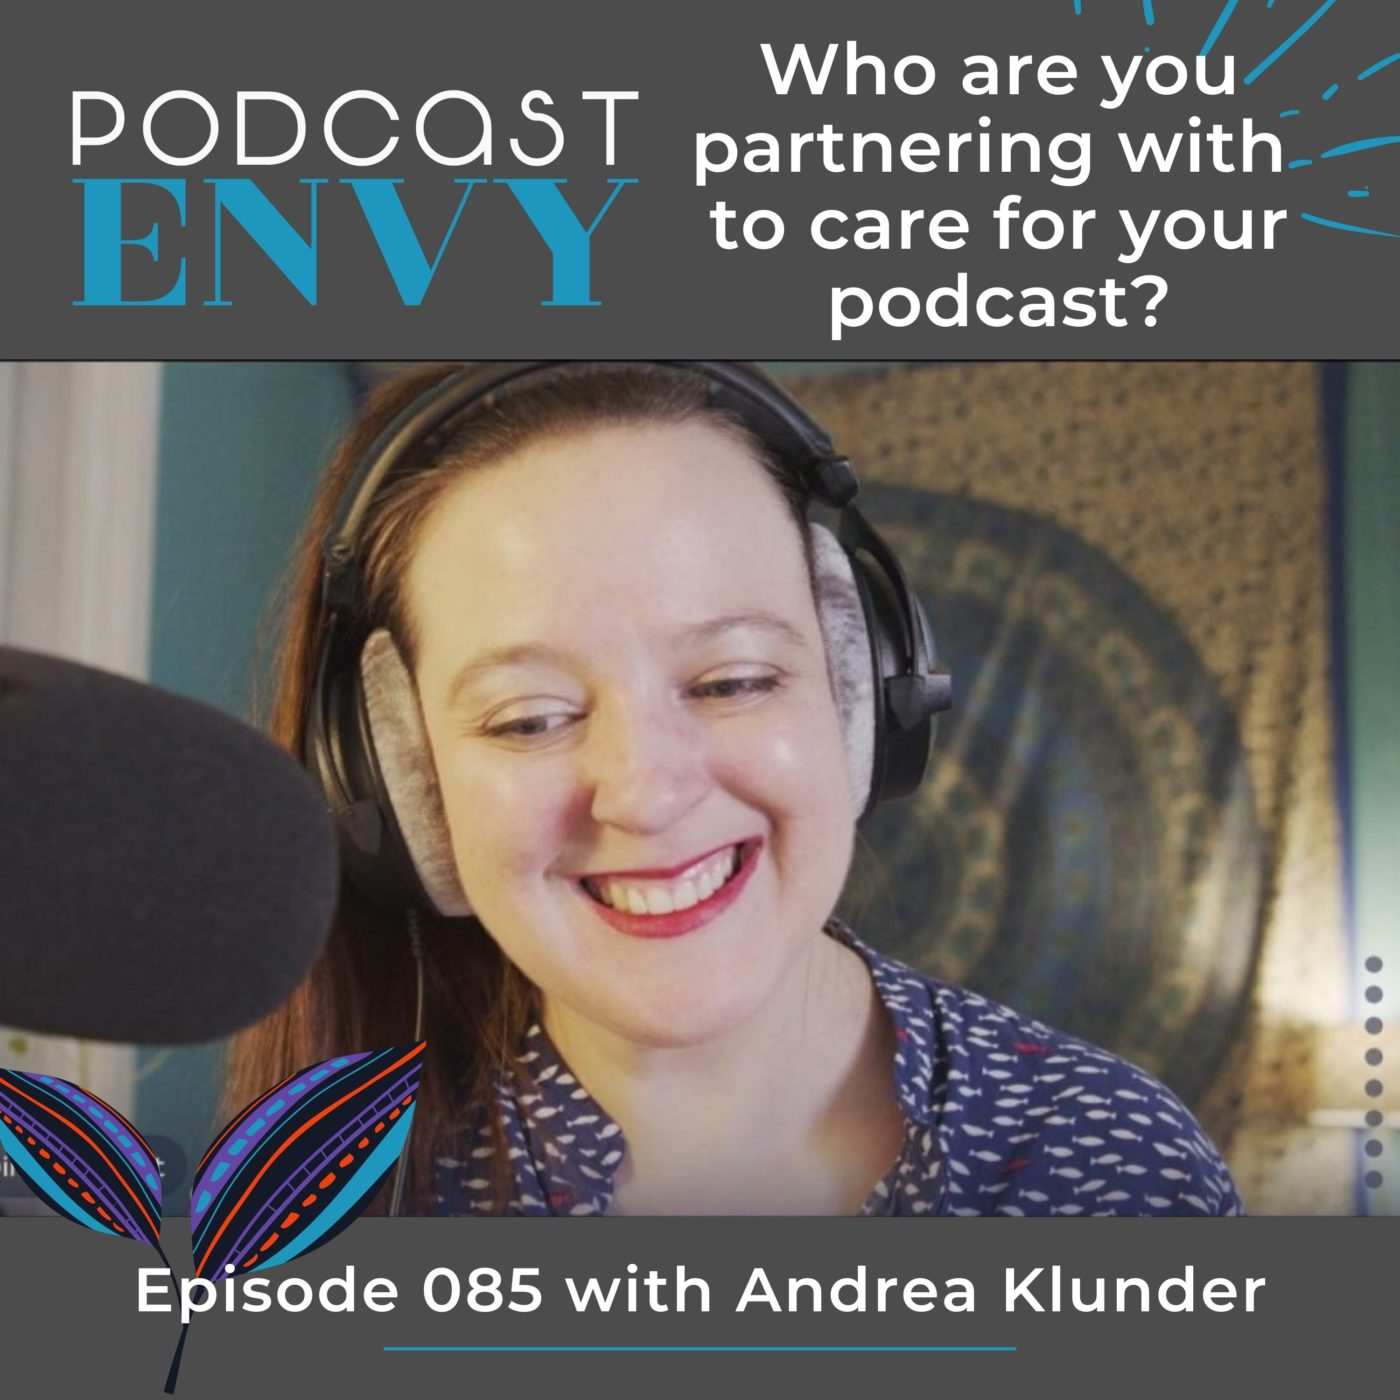 085: Who are you partnering with to care for your podcast?